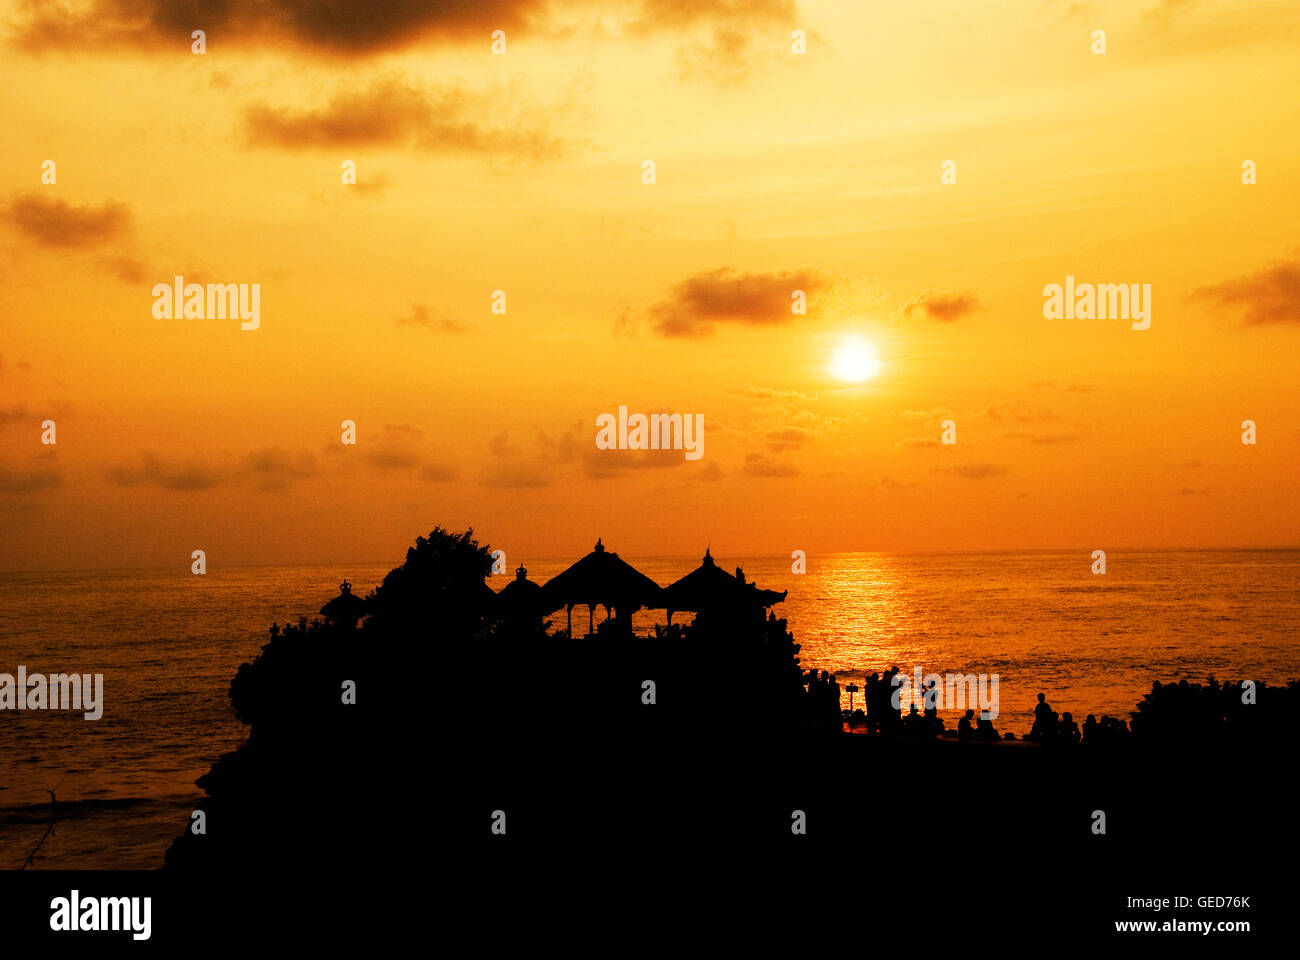 Tanah Lot Bali Sunsets - Stock Image